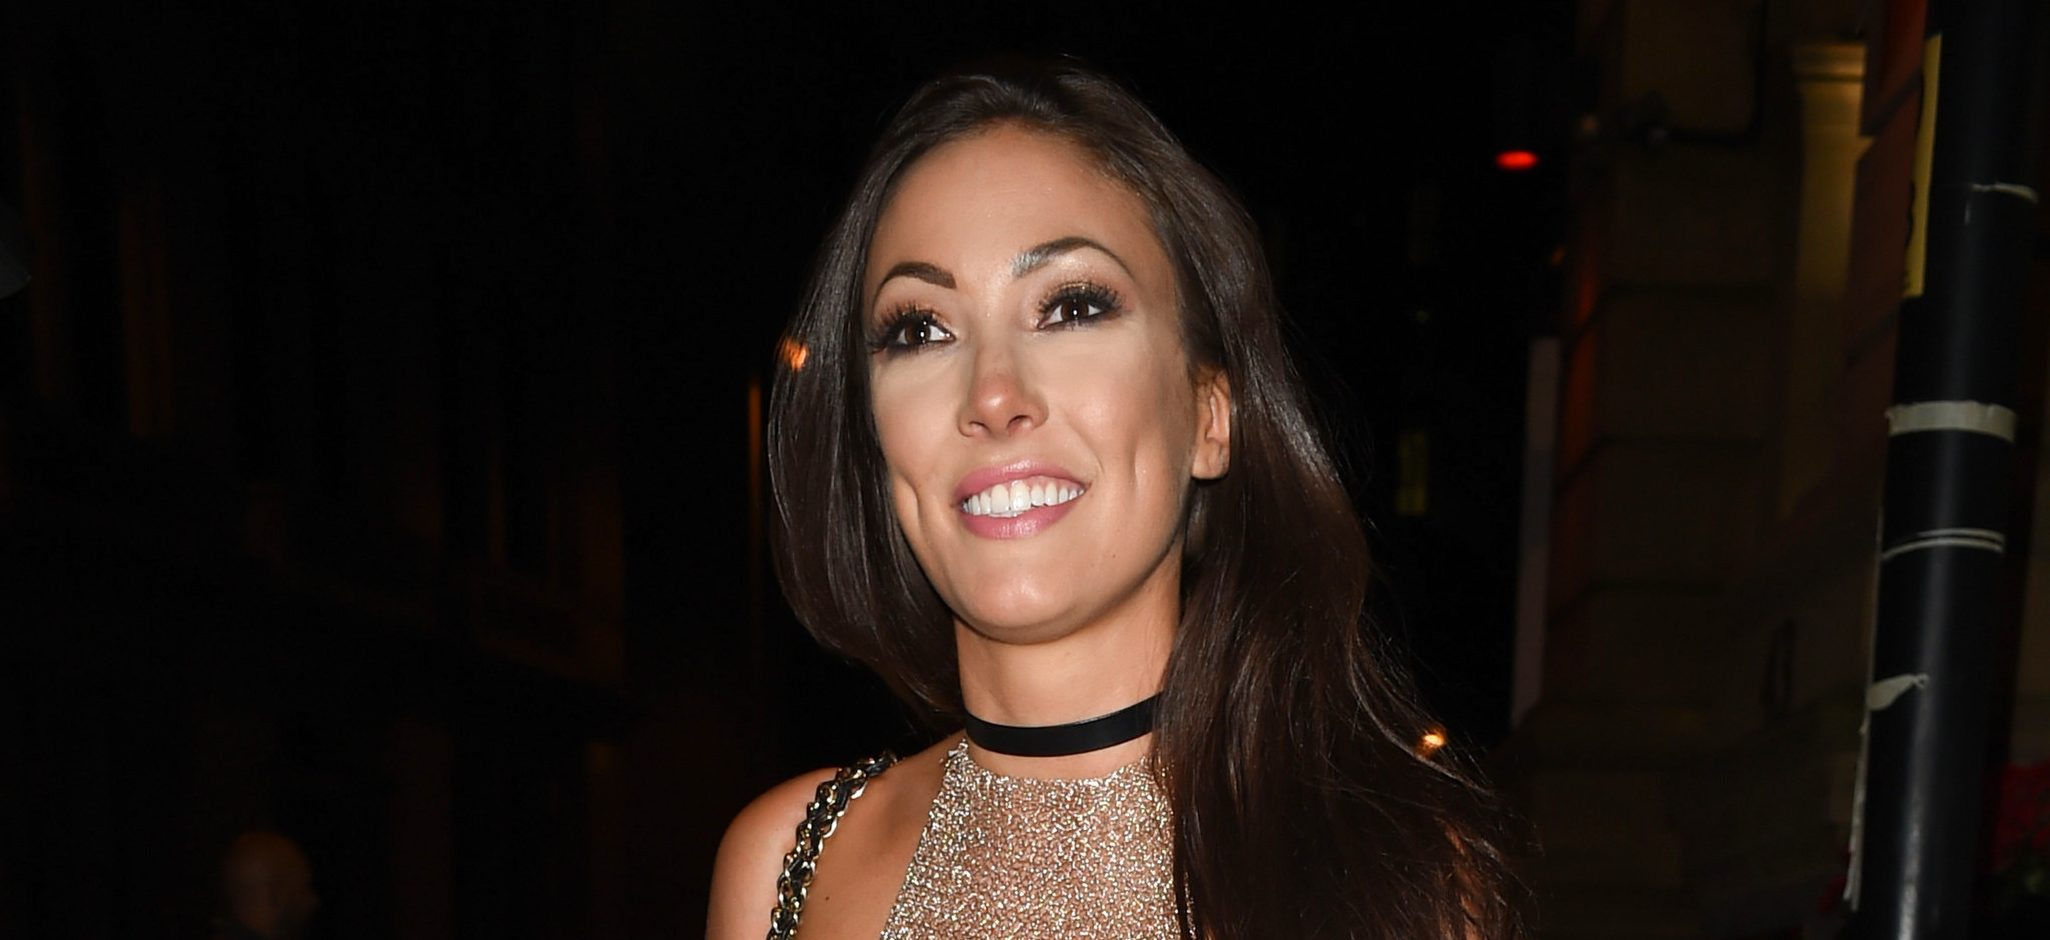 Love Island's Sophie Gradon hanged herself after taking alcohol and cocaine